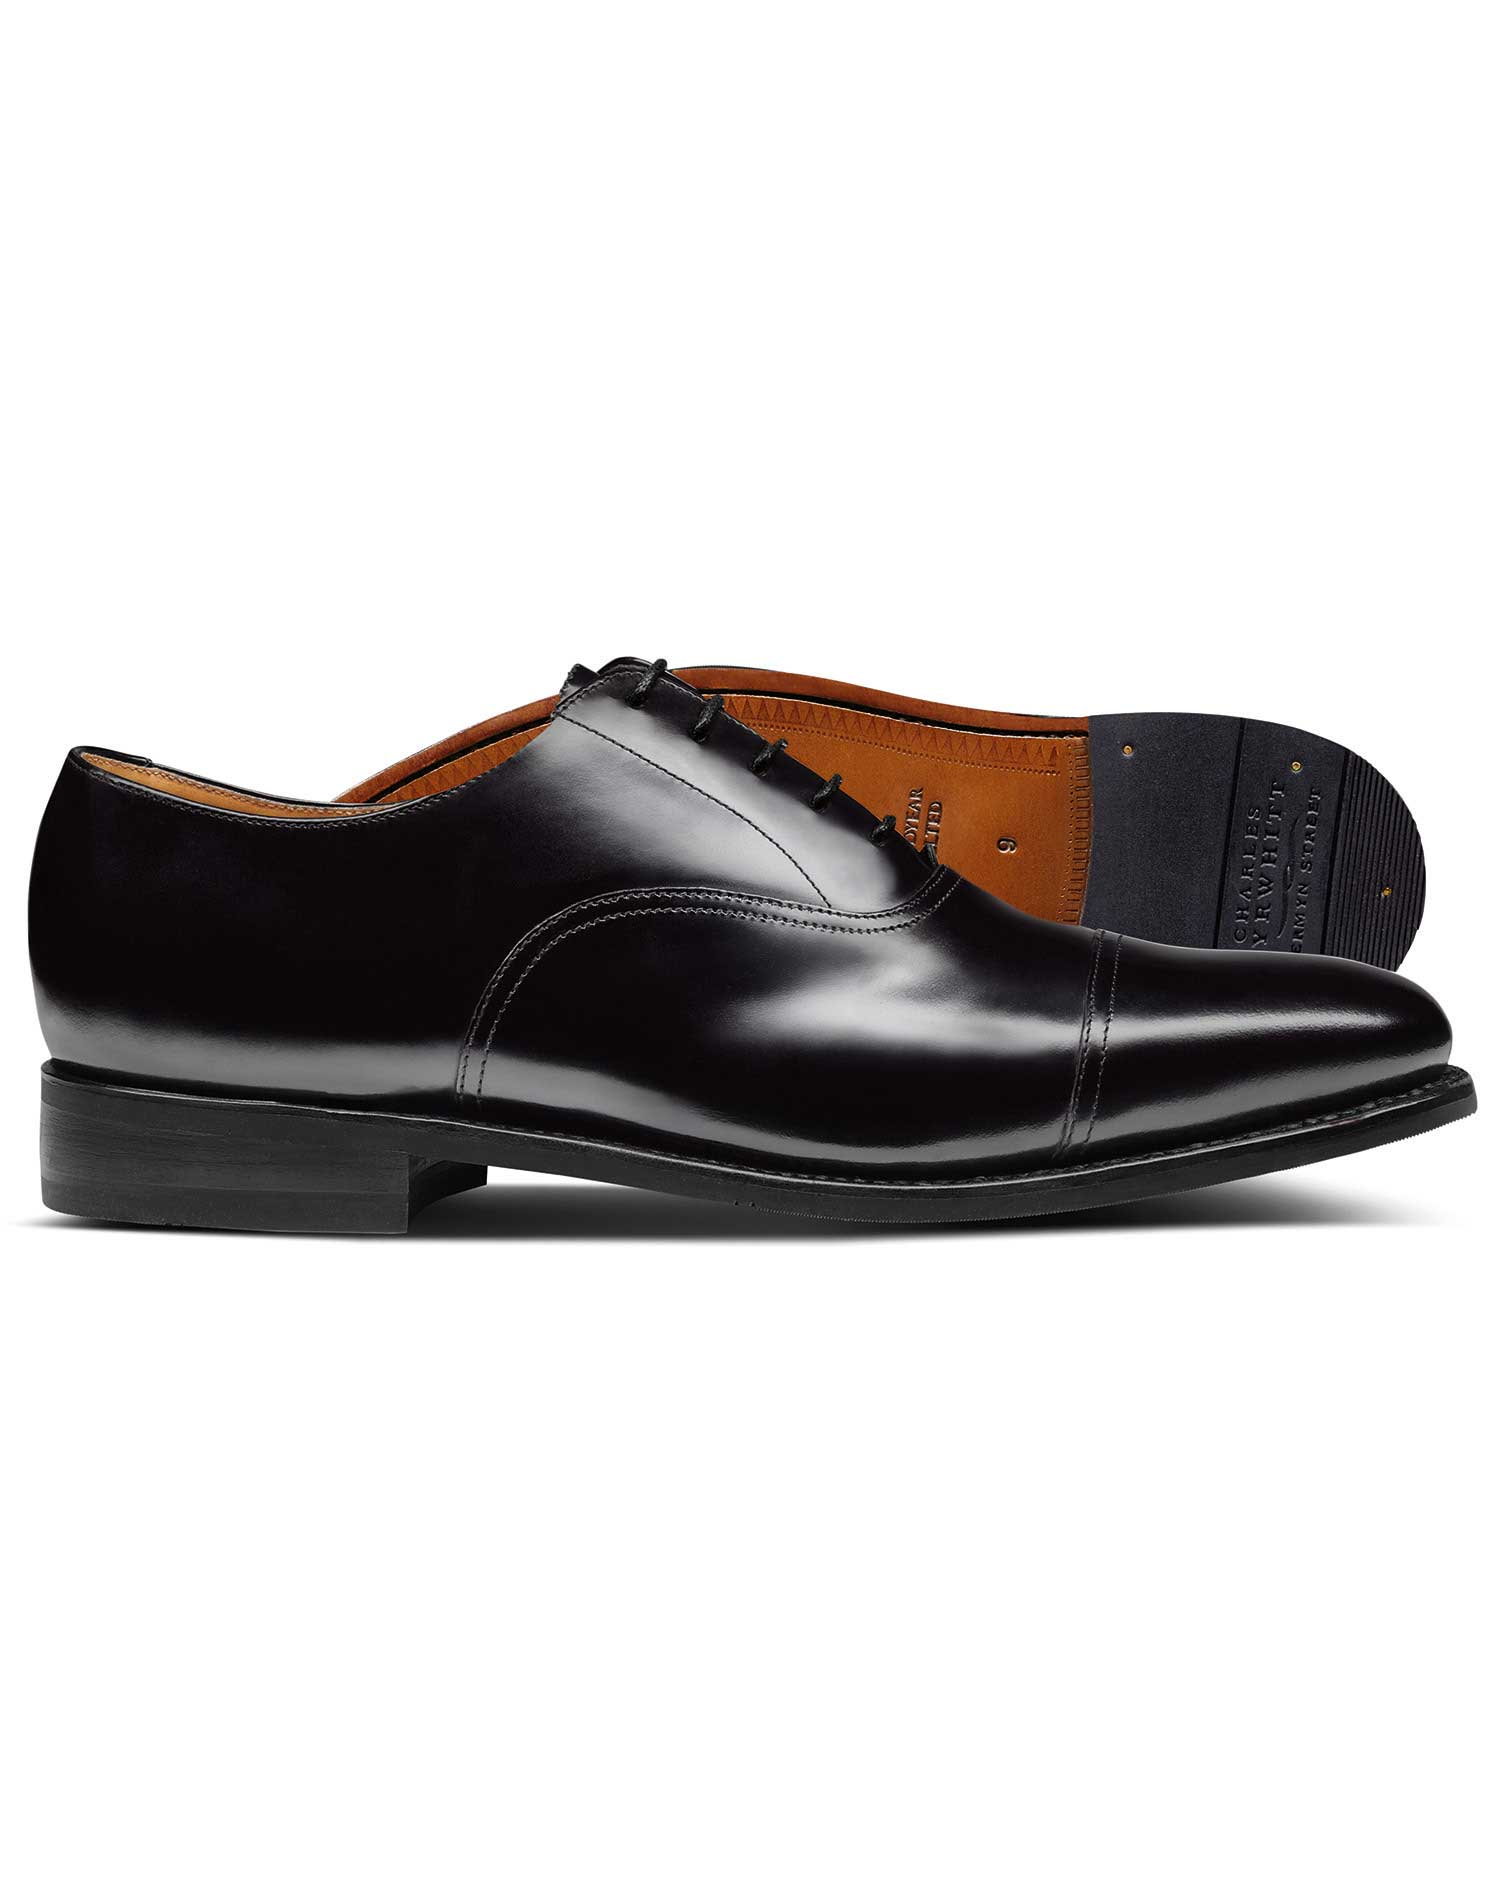 Black Oxford Toe Cap Shoes